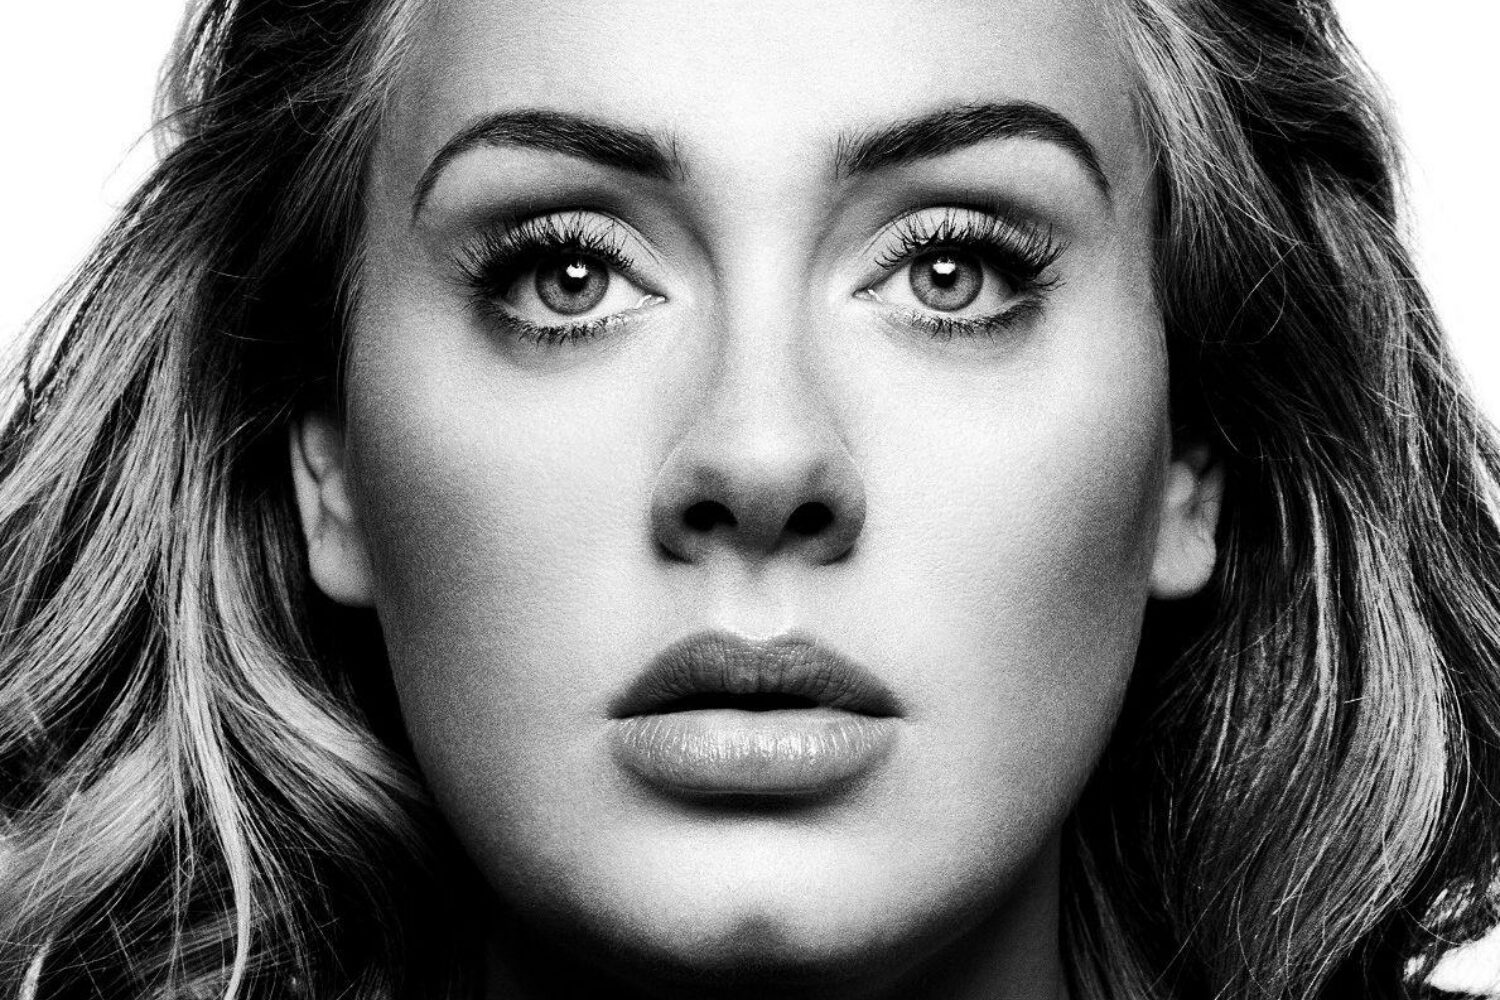 Adele declined an offer to perform the 2017 Superbowl halftime show